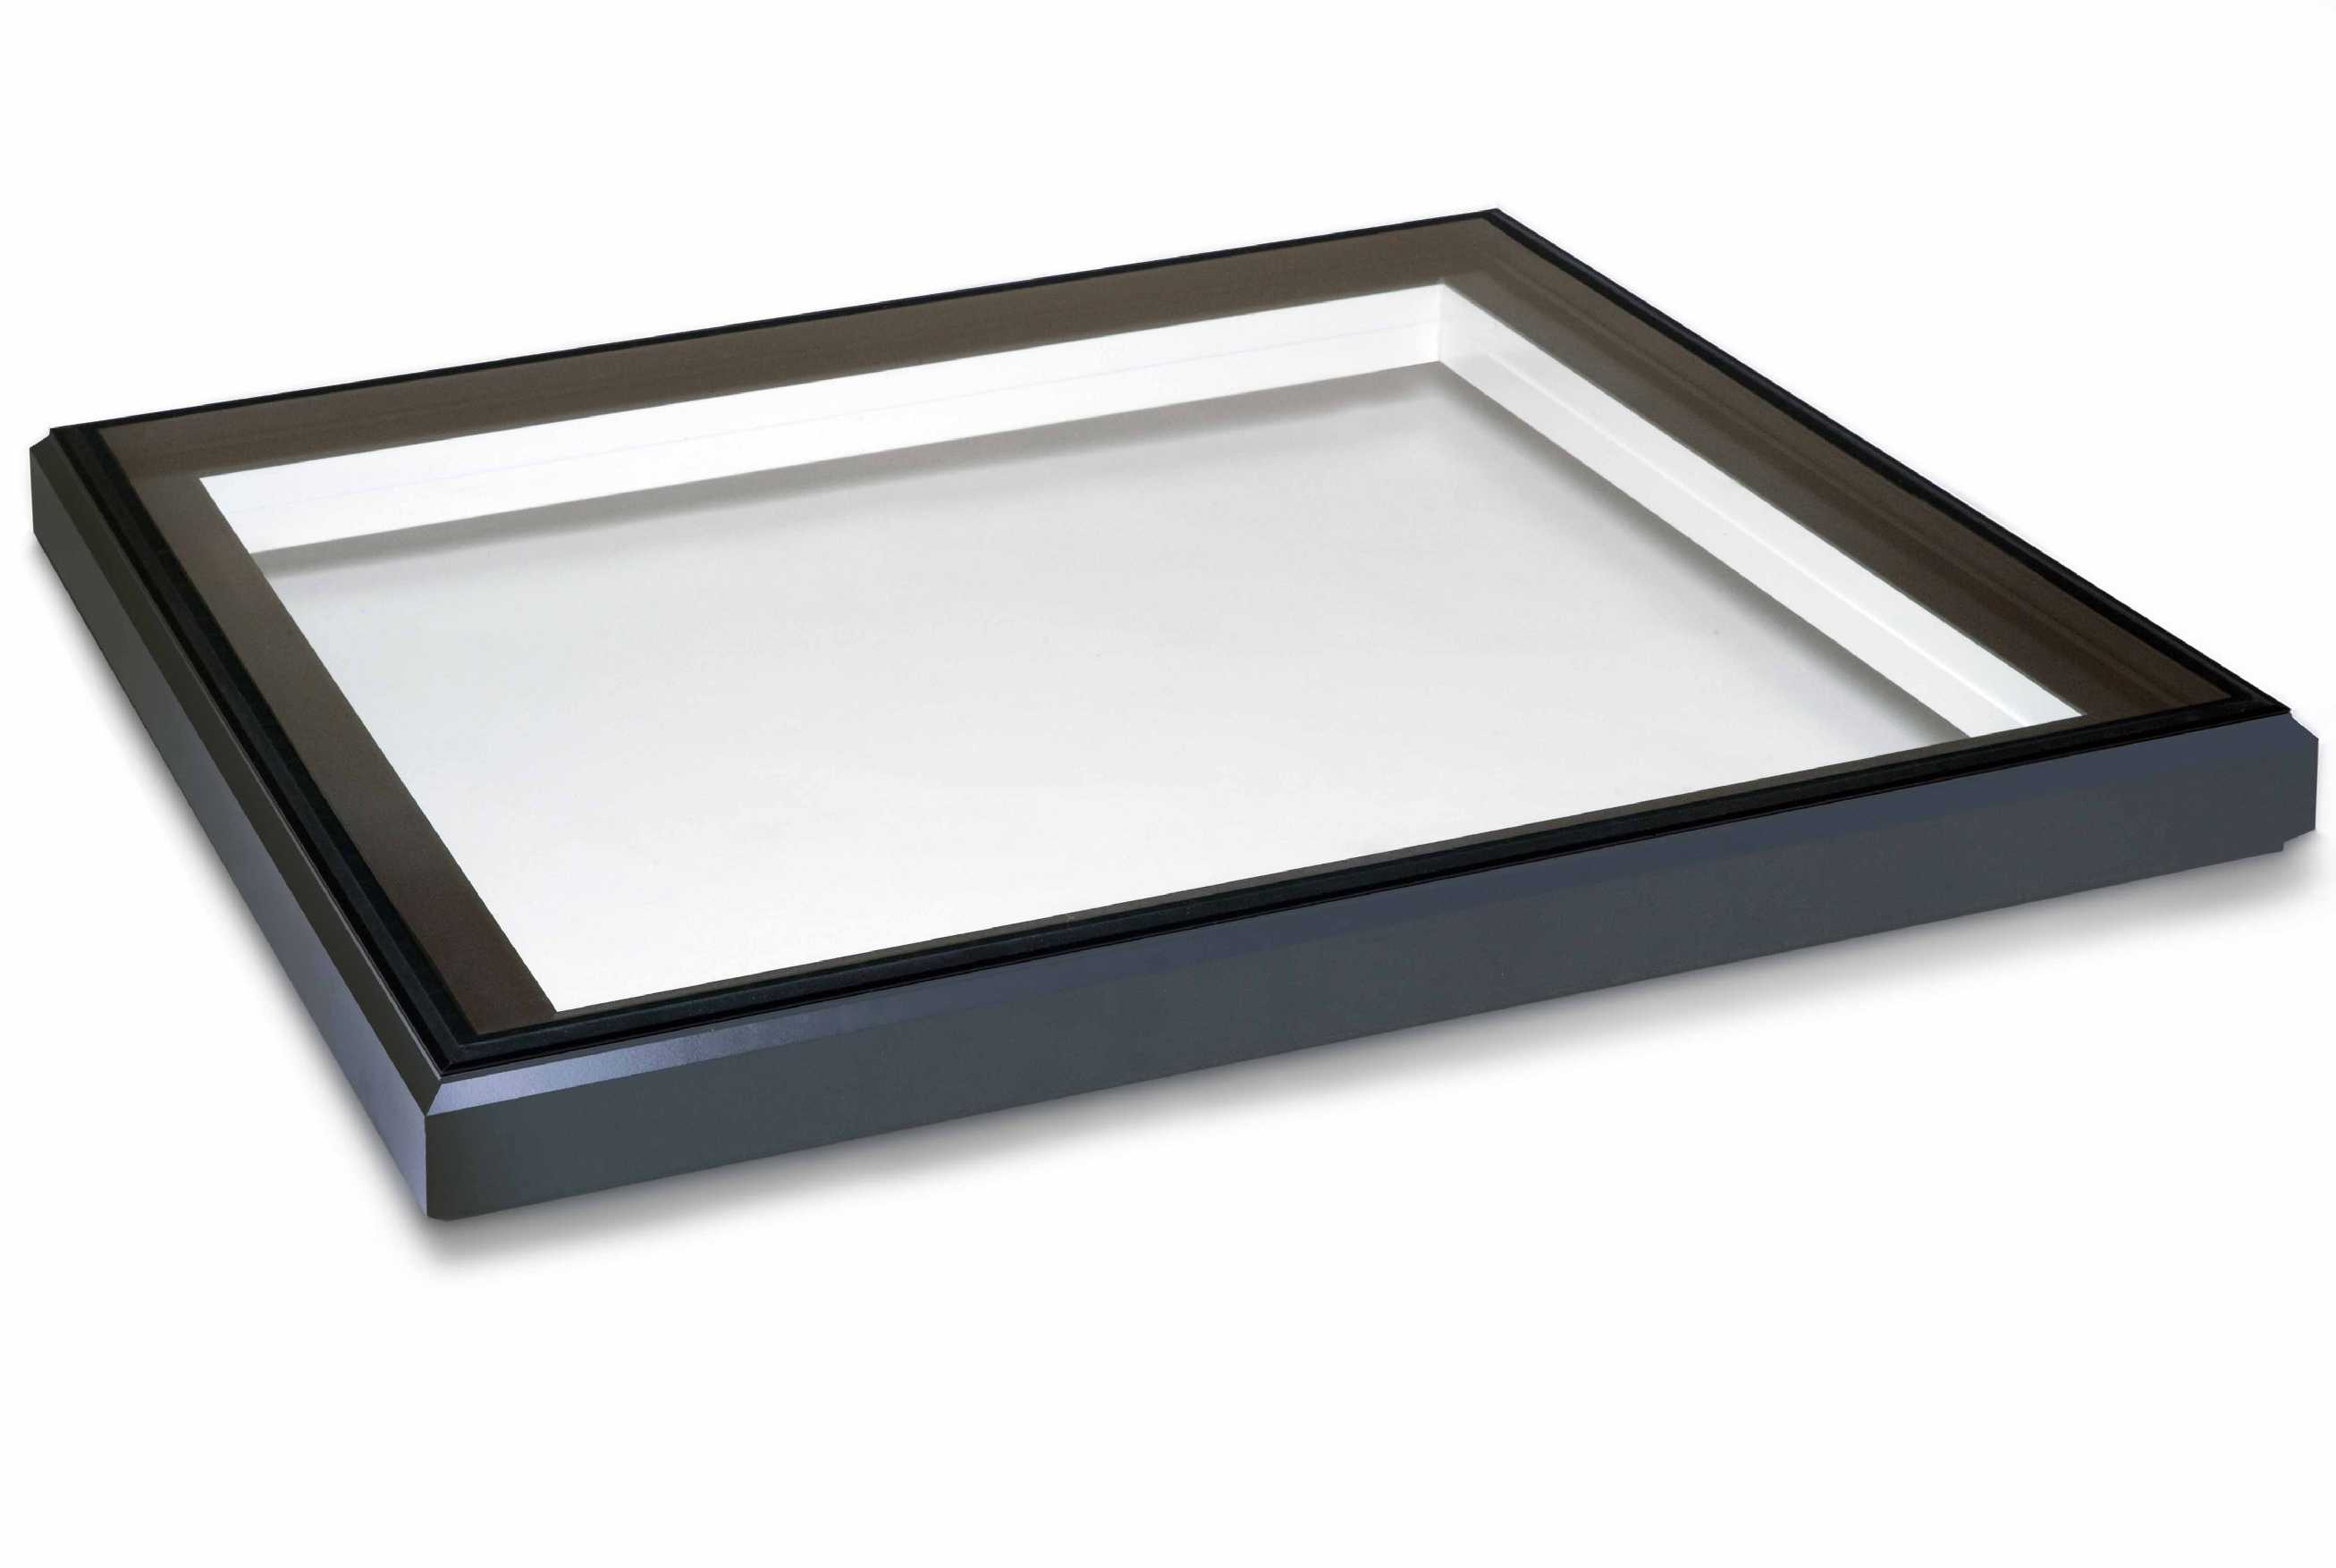 Buy EcoGard Flat Roof light, Double Glazed, Fixed, 1,000mm x 2,000mm online today